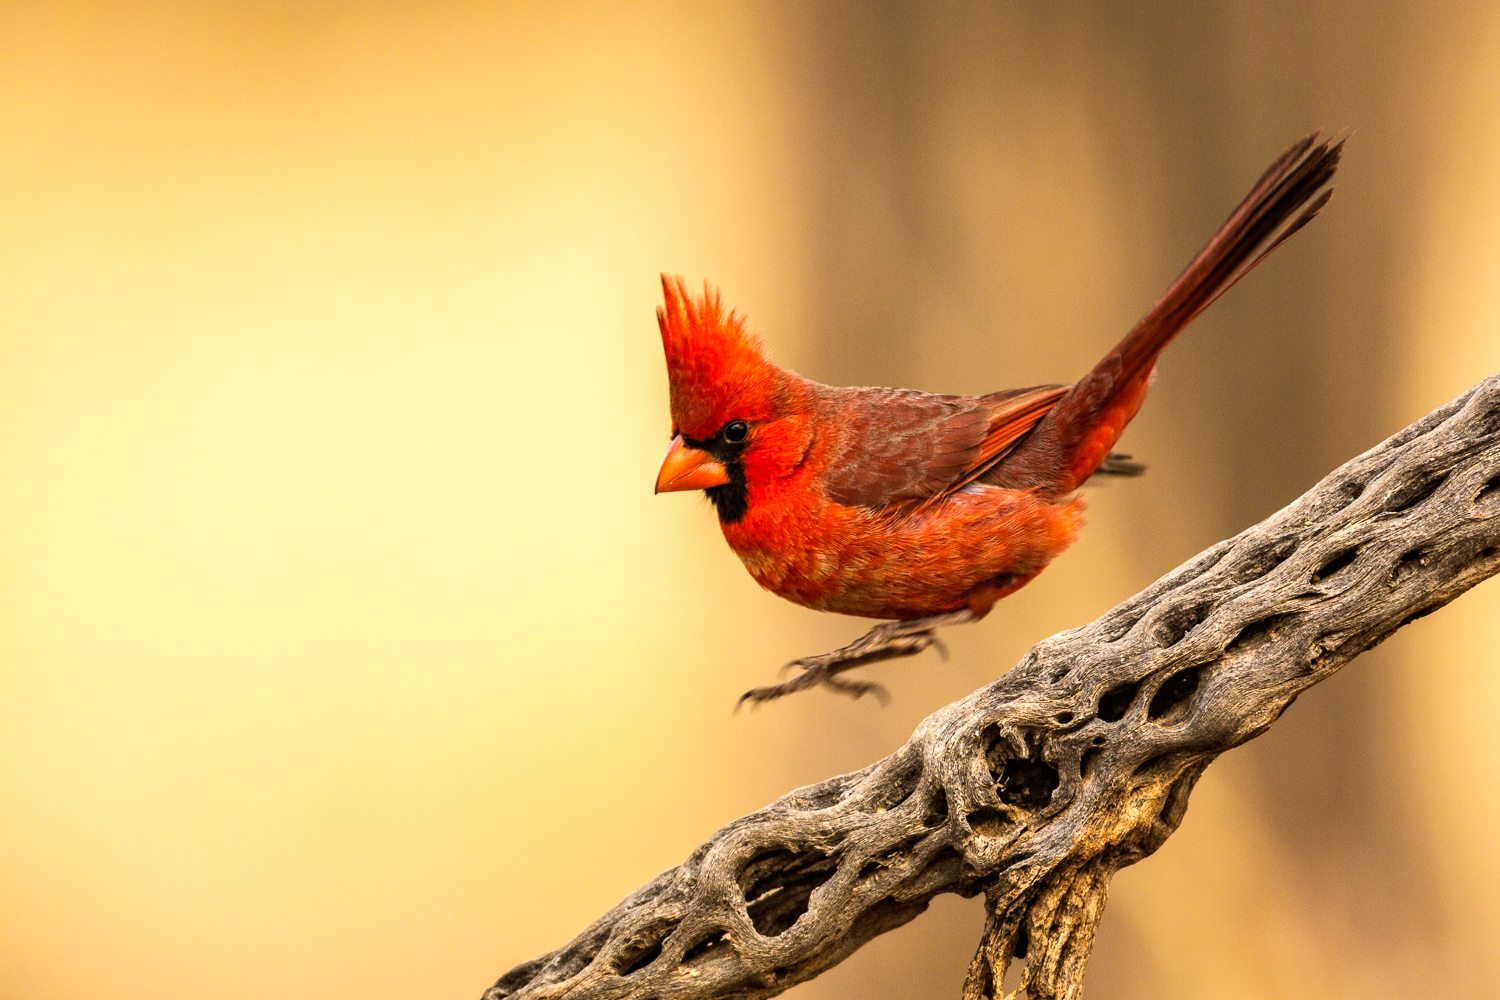 Northern Cardinal -This image was selected as one of the top 250 images in the 2015 North American Nature Photography Association's Showcase Competition.